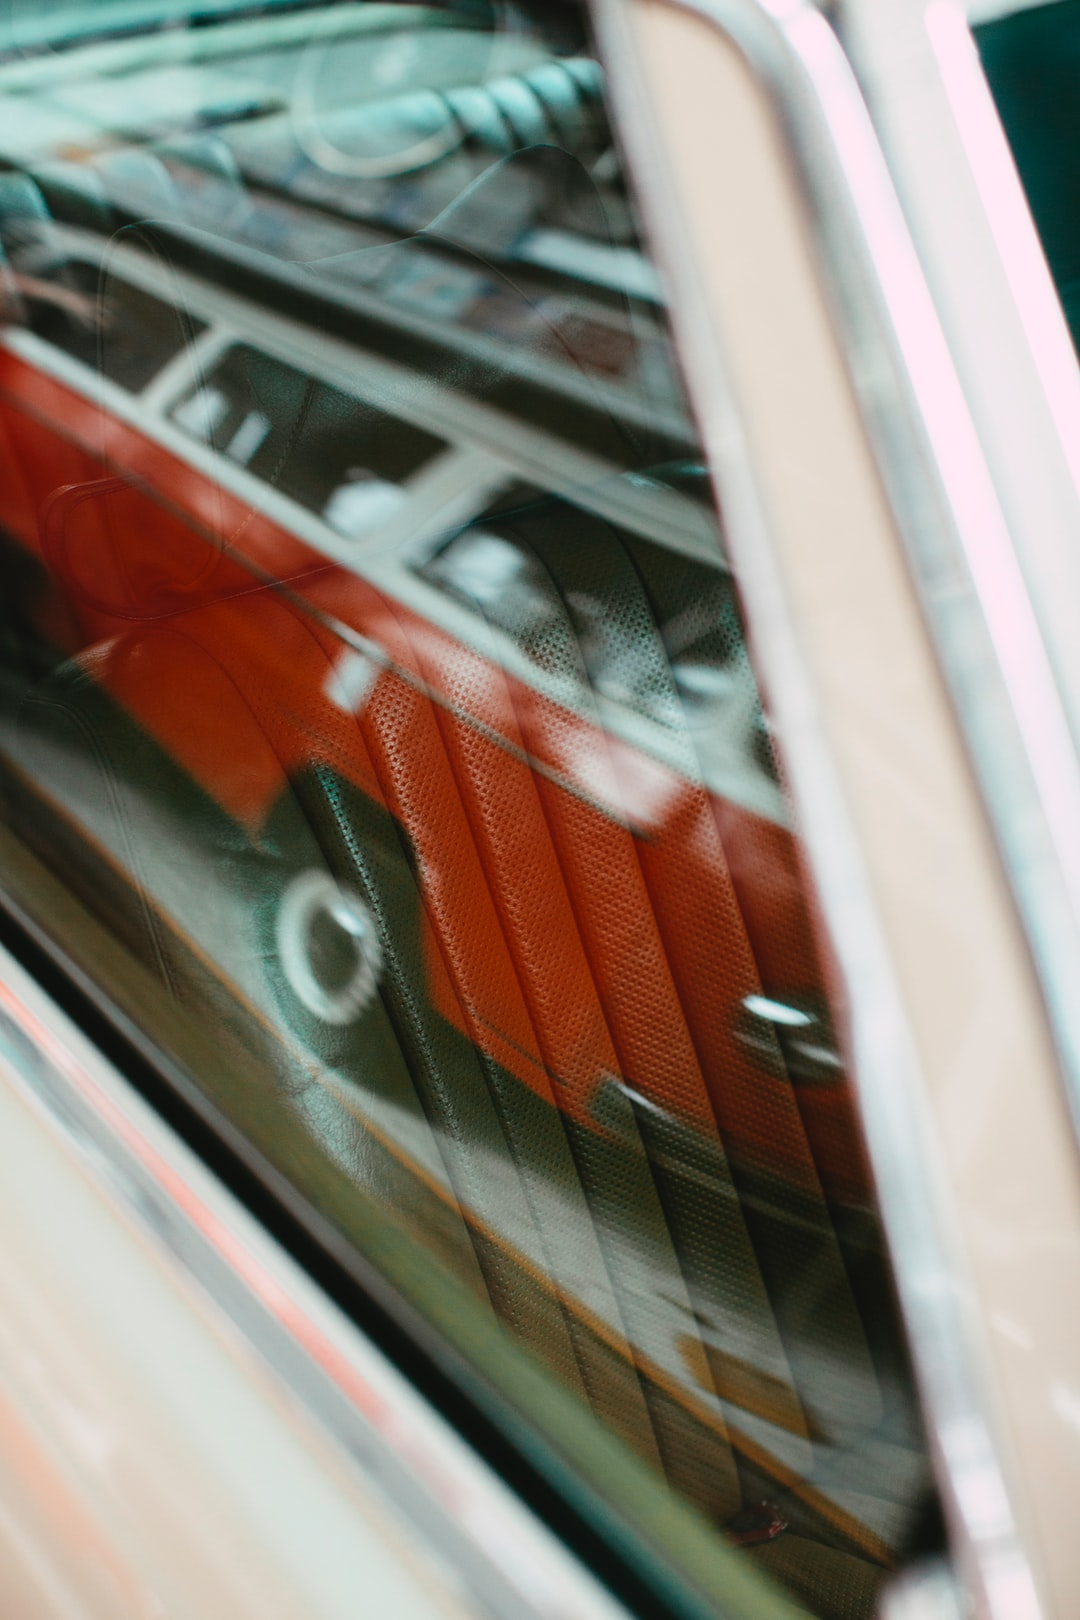 Vintage classic oldtimer multivan VW Bulli T2 red year: 1975 – Reflection